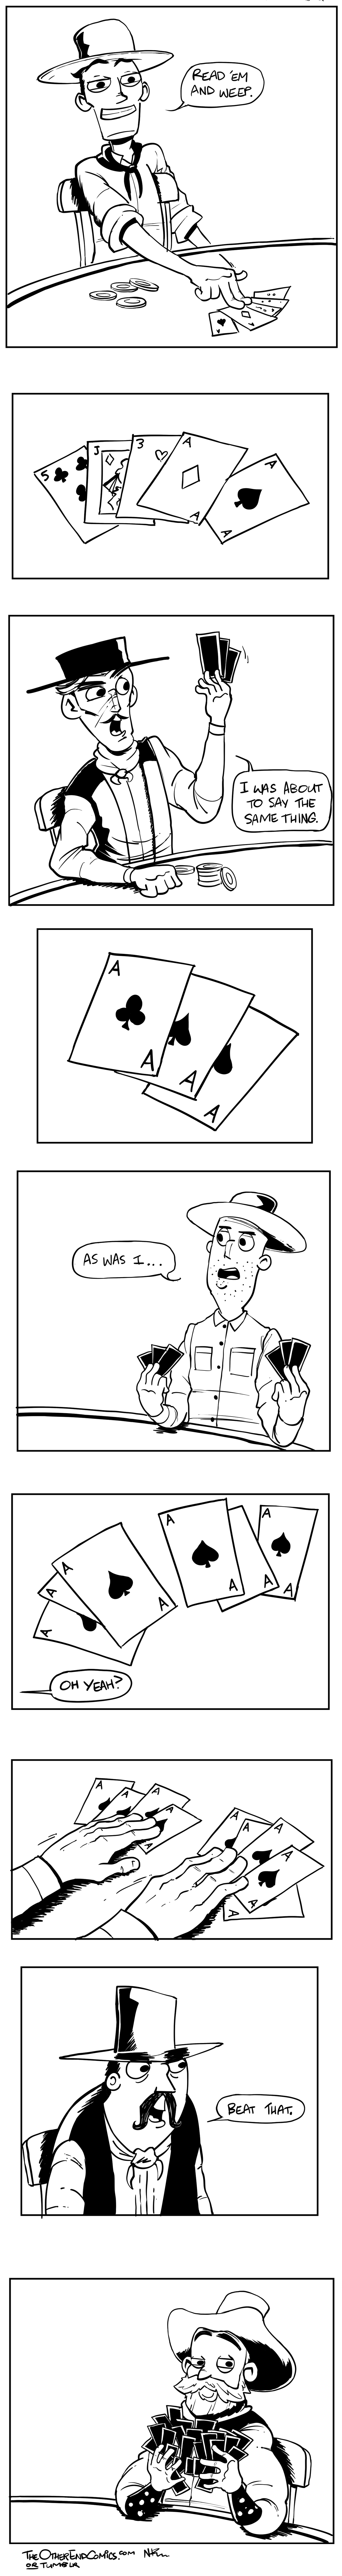 That's exactly how poker works. This comic is so real.